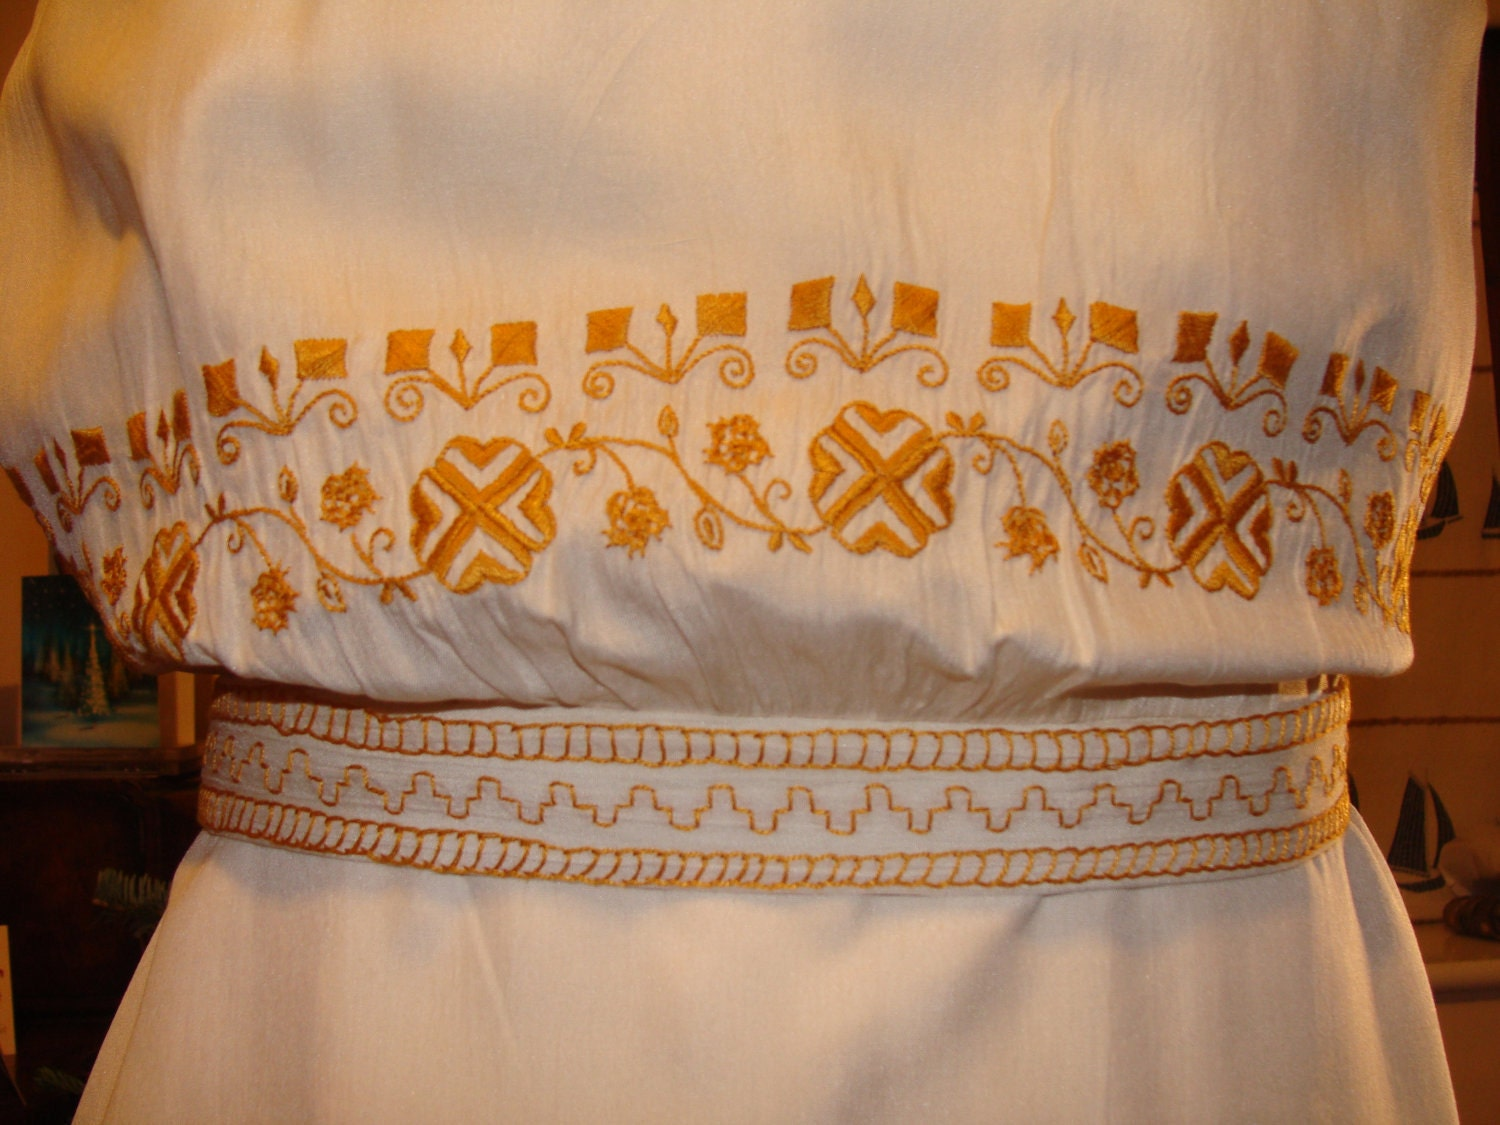 Cream silk 1920s to 1930s dress with ethnic motif embroidery